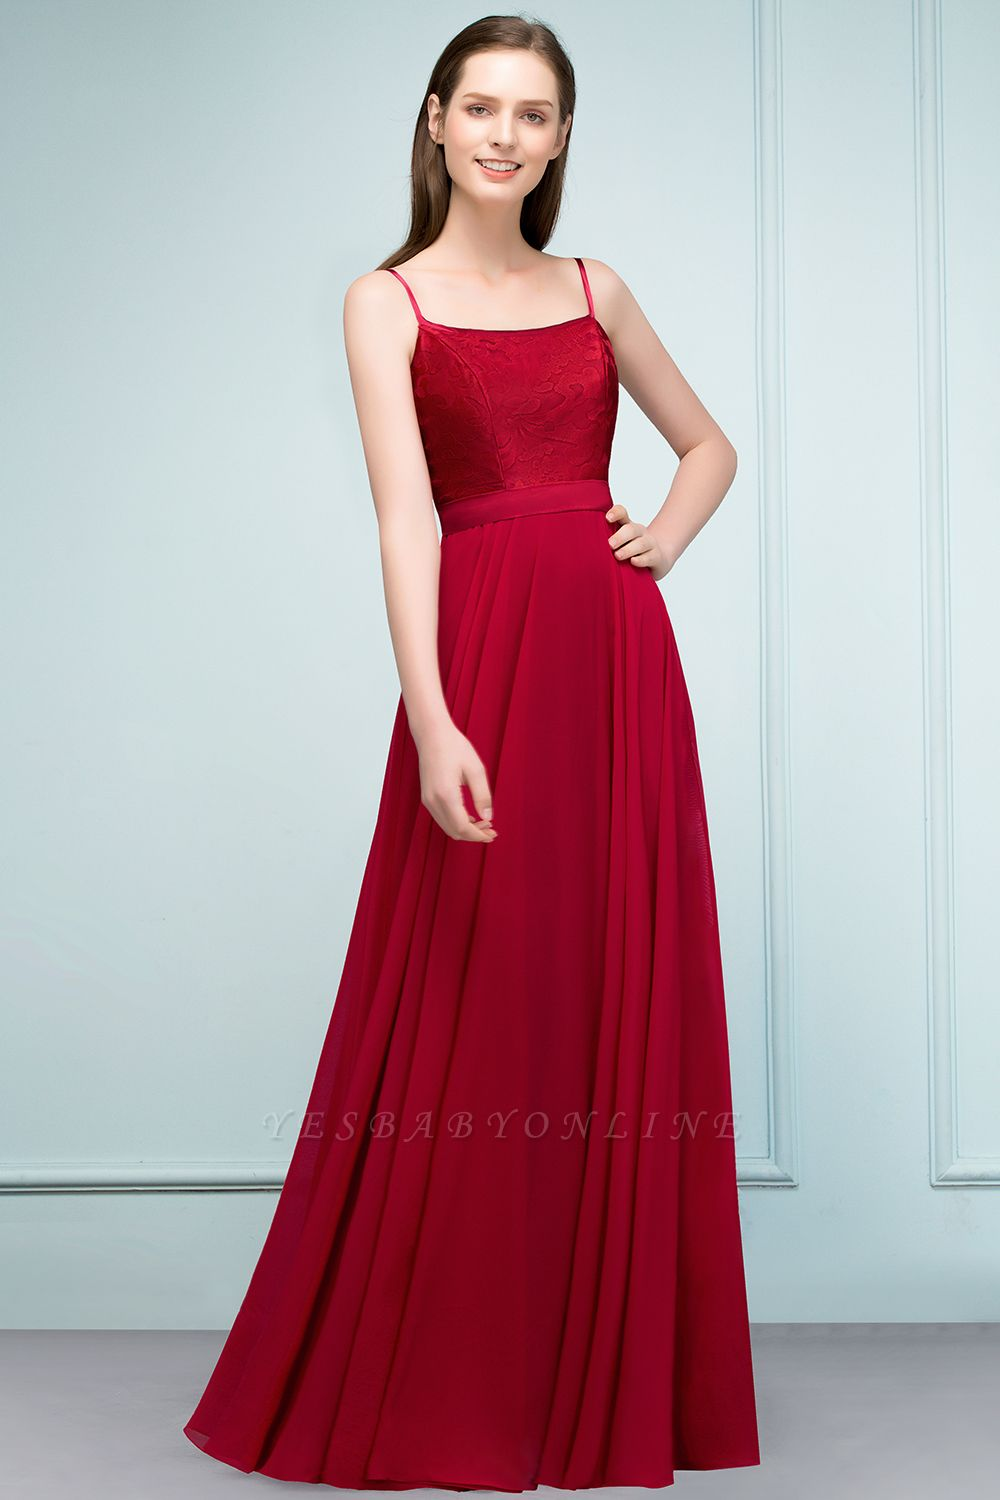 A-line Spaghetti Floor Length Lace Appliques Prom Dress In Stock